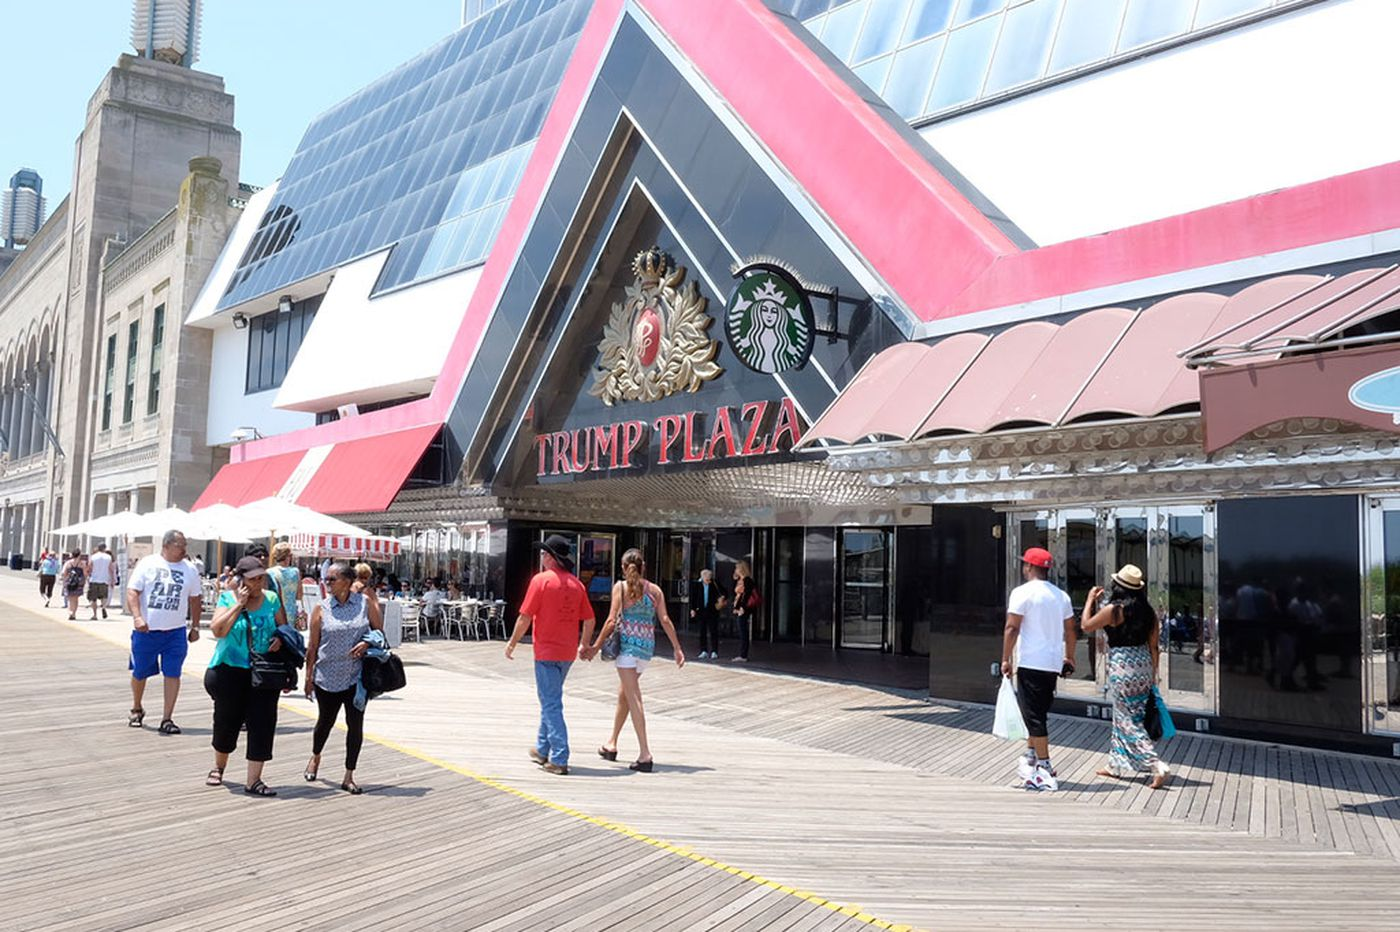 Trump Plaza set to close in Sept., N.J. officials say